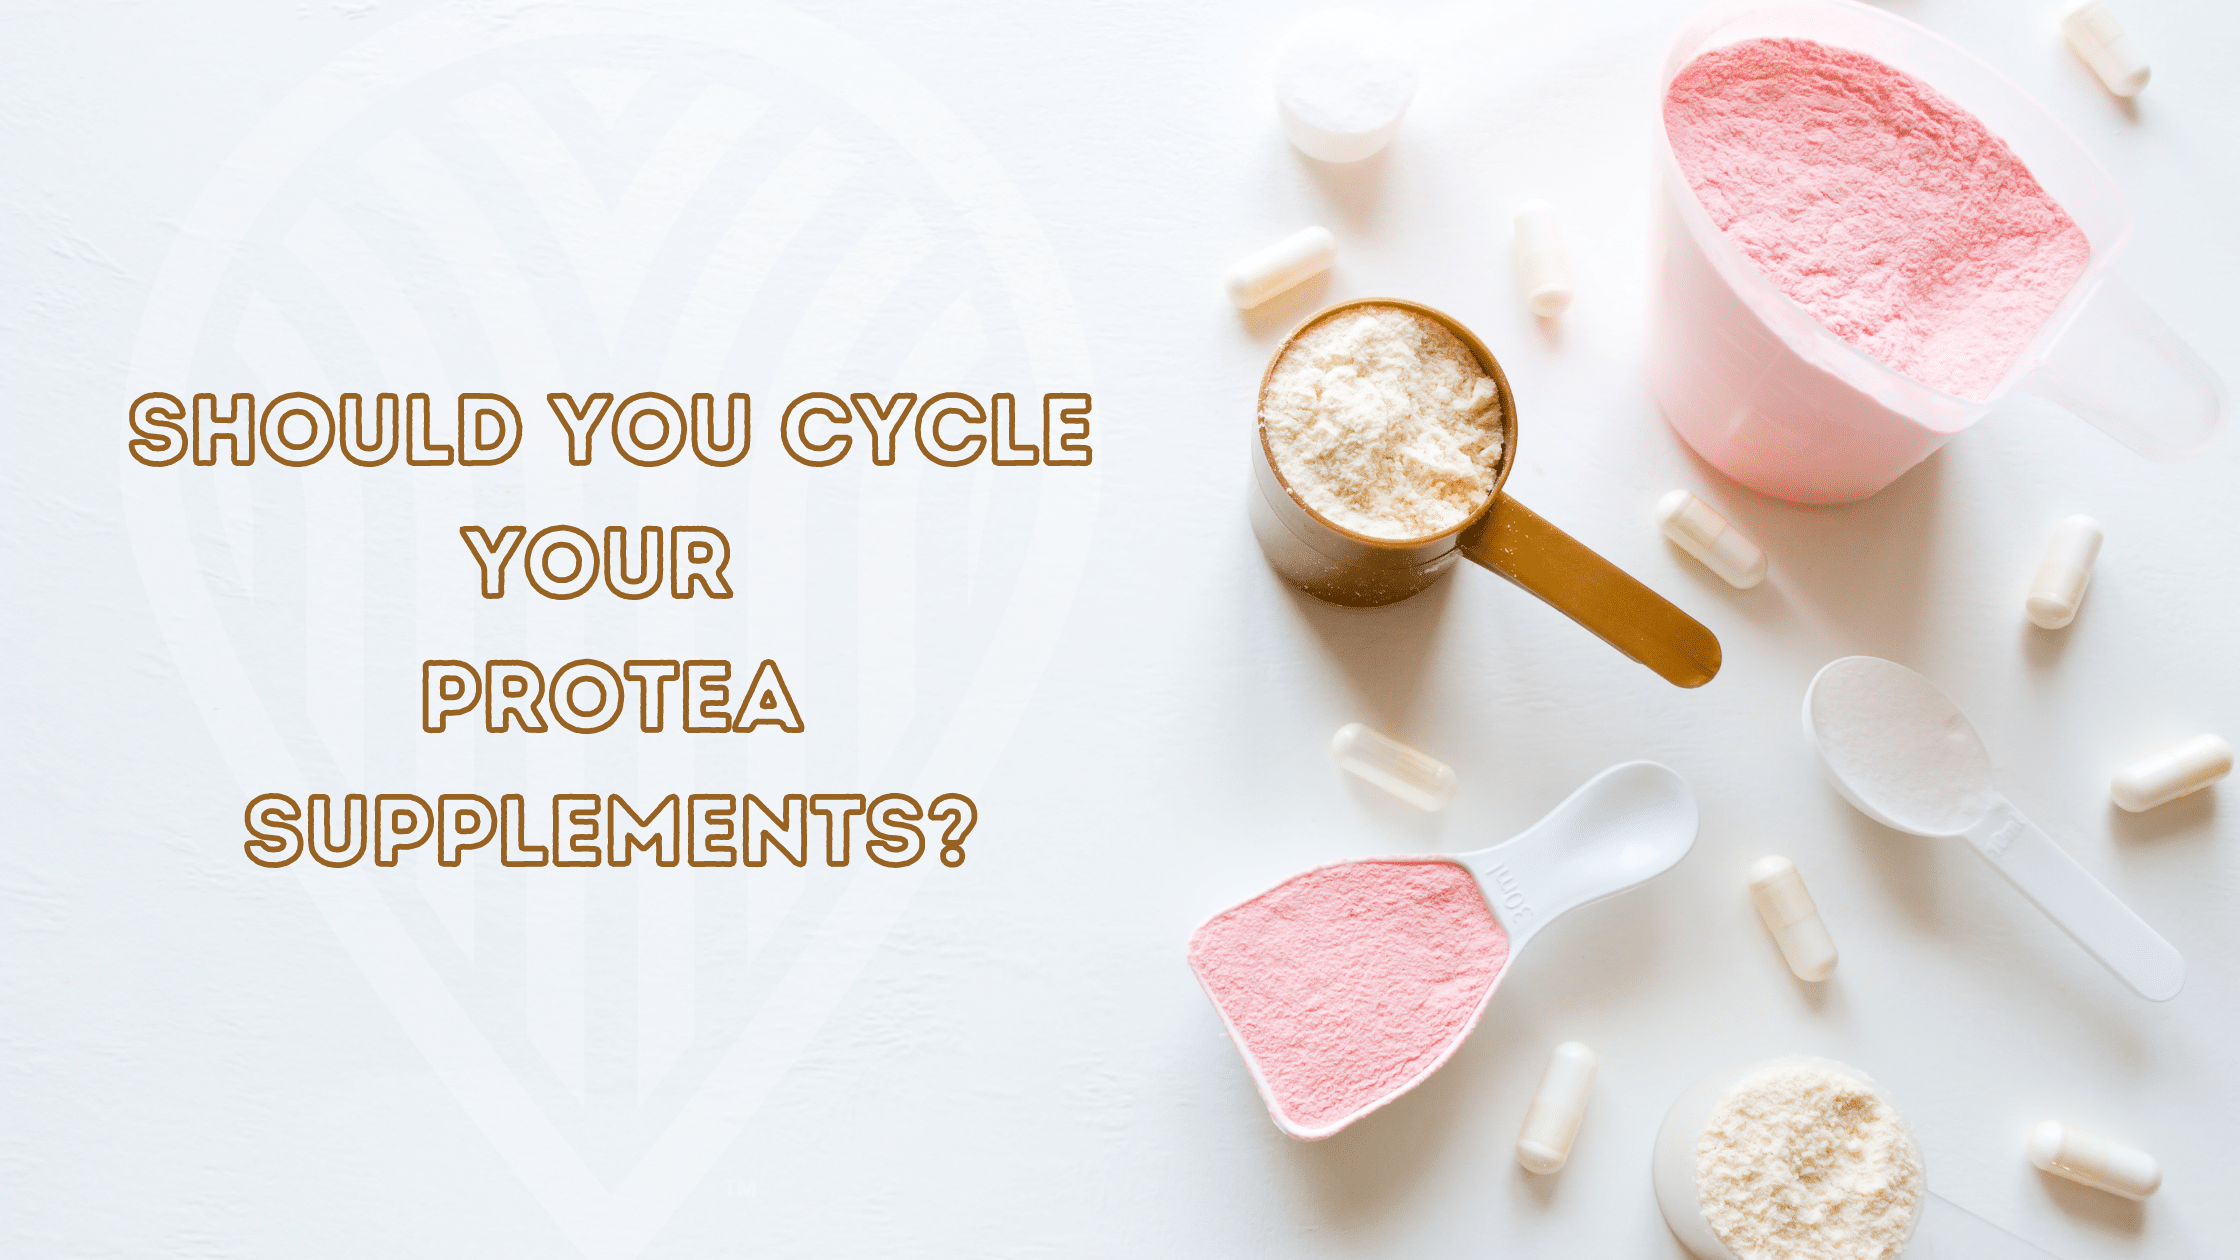 Should you cycle your Protea supplements?